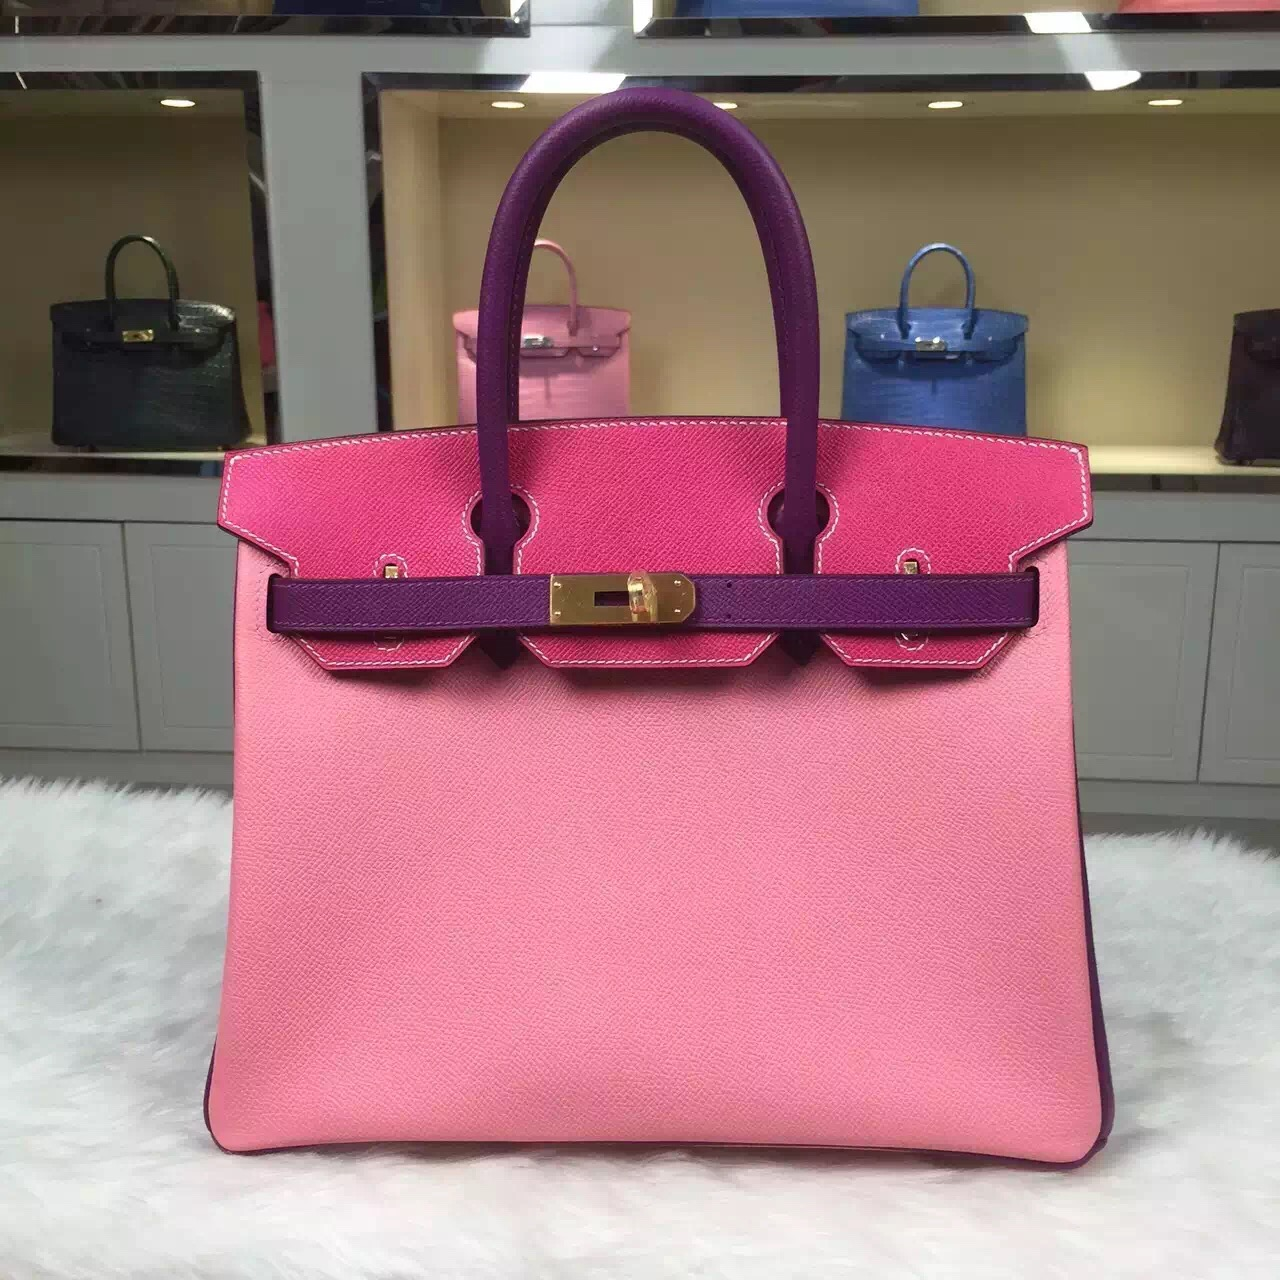 b9ca5e23d11d Hand Stitching Hermes Birkin Bag 30CM Multi-color Epsom Leather Women s  Handbag